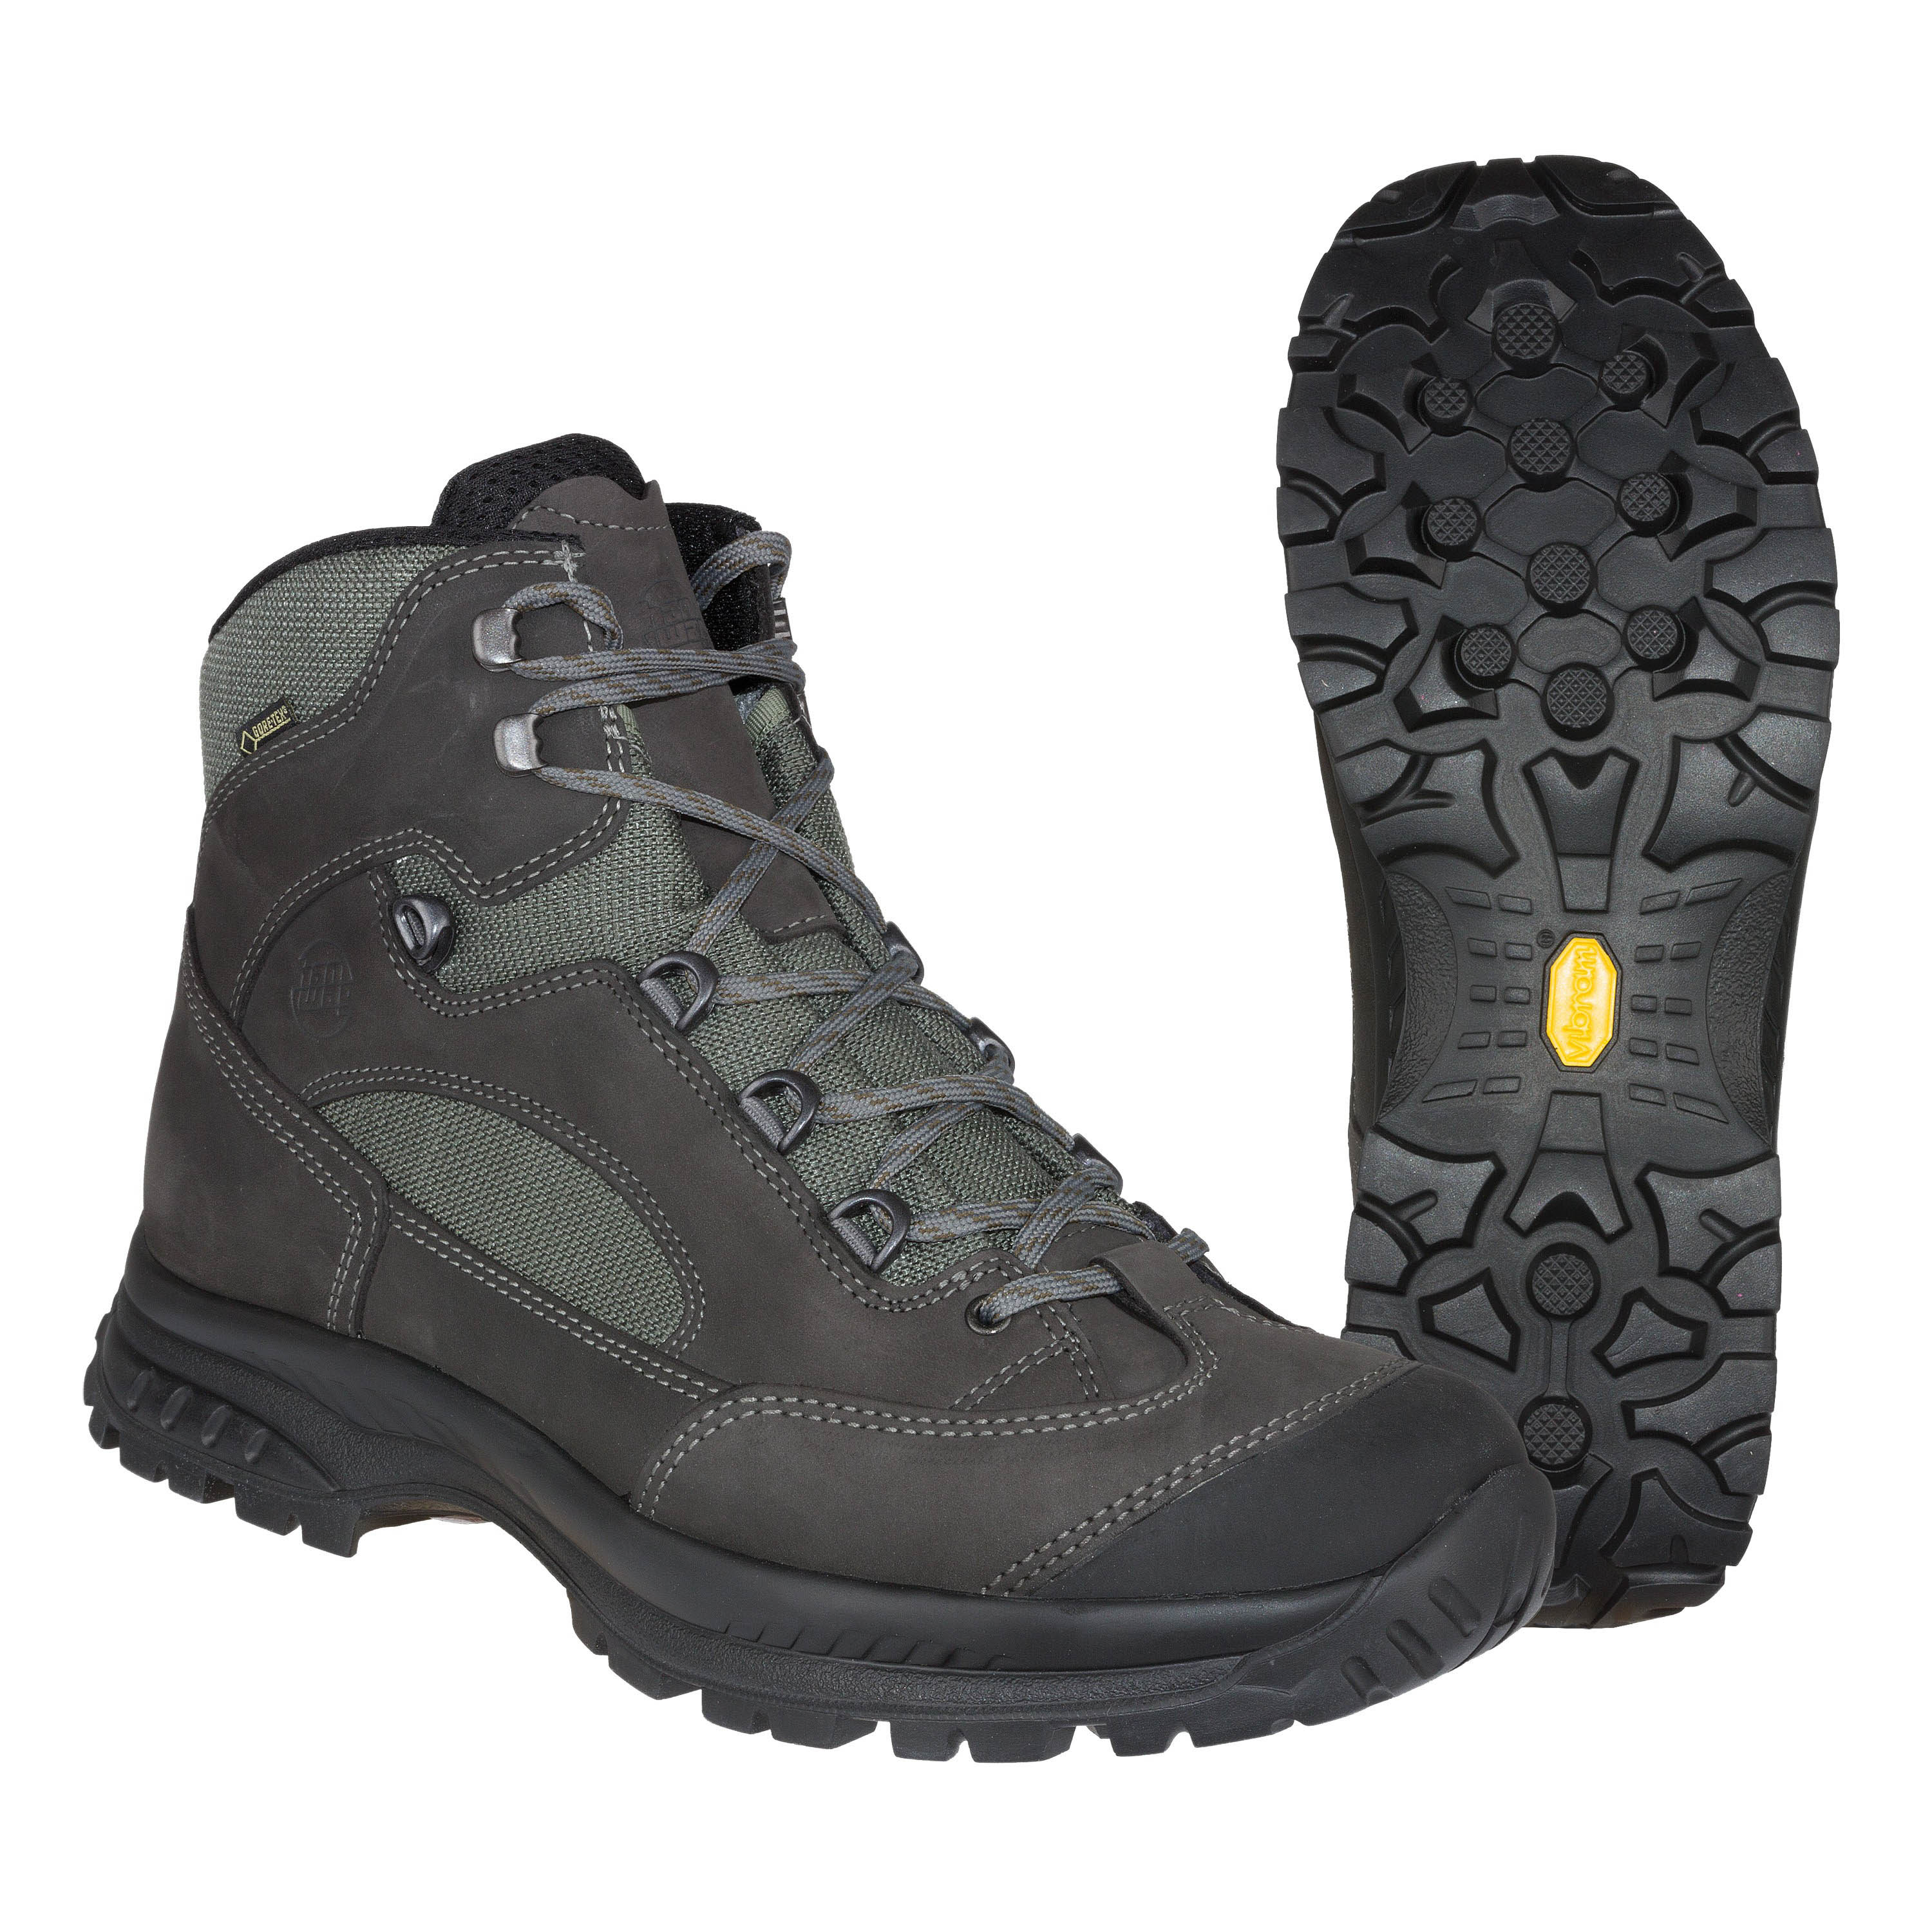 Chaussures Hanwag Banks GTX gris